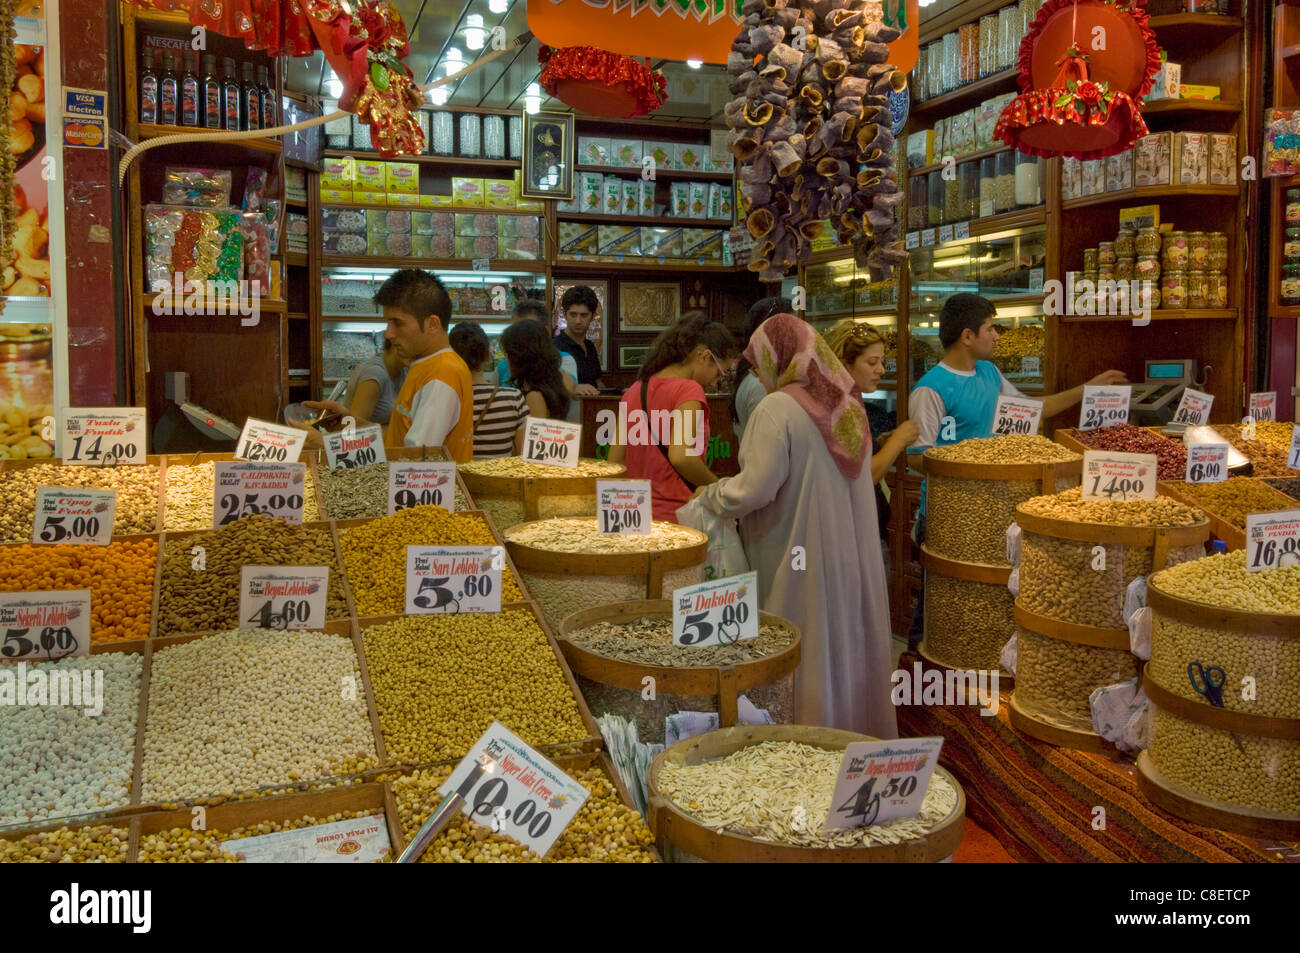 People buying pulses, nuts and spices at stall in the Egyptian bazaar (Spice bazaar) (Misir Carsisi, Eminonu, Istanbul, - Stock Image